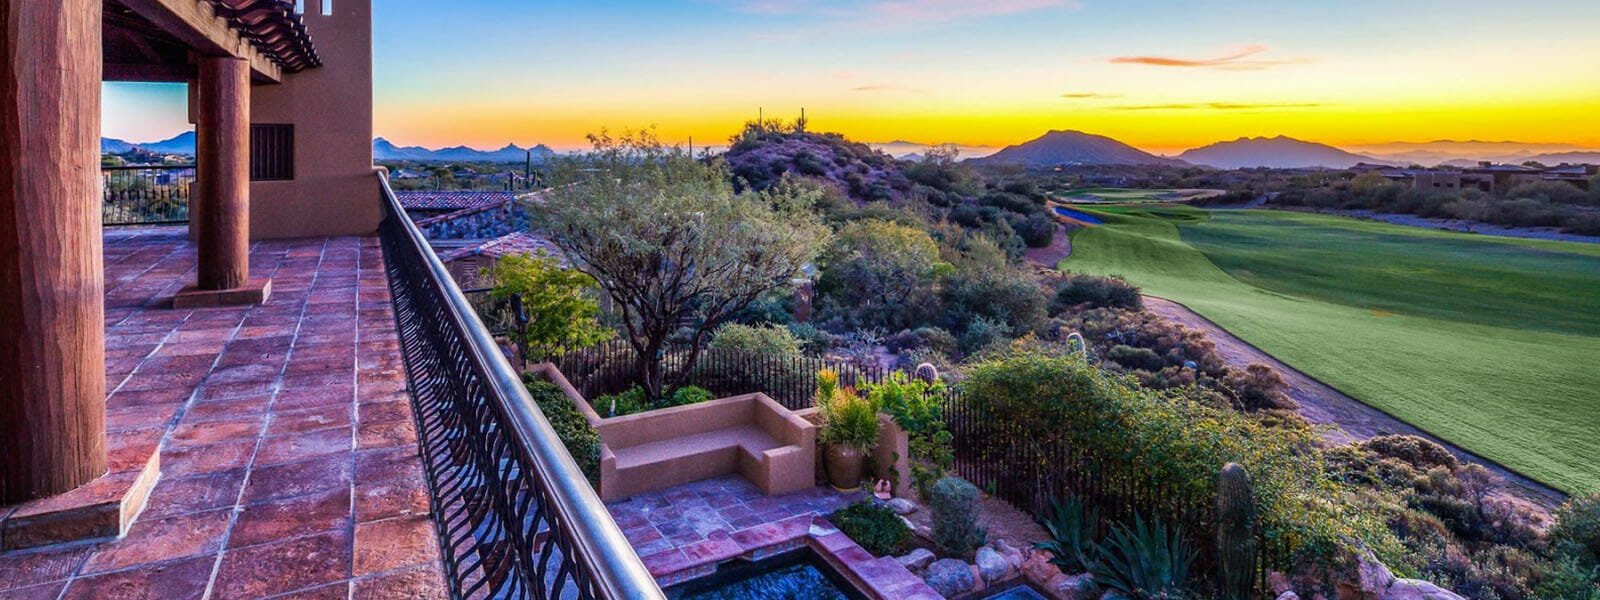 Gated Community in Scottsdale AZ | Desert Mountain | Active Adult Golf